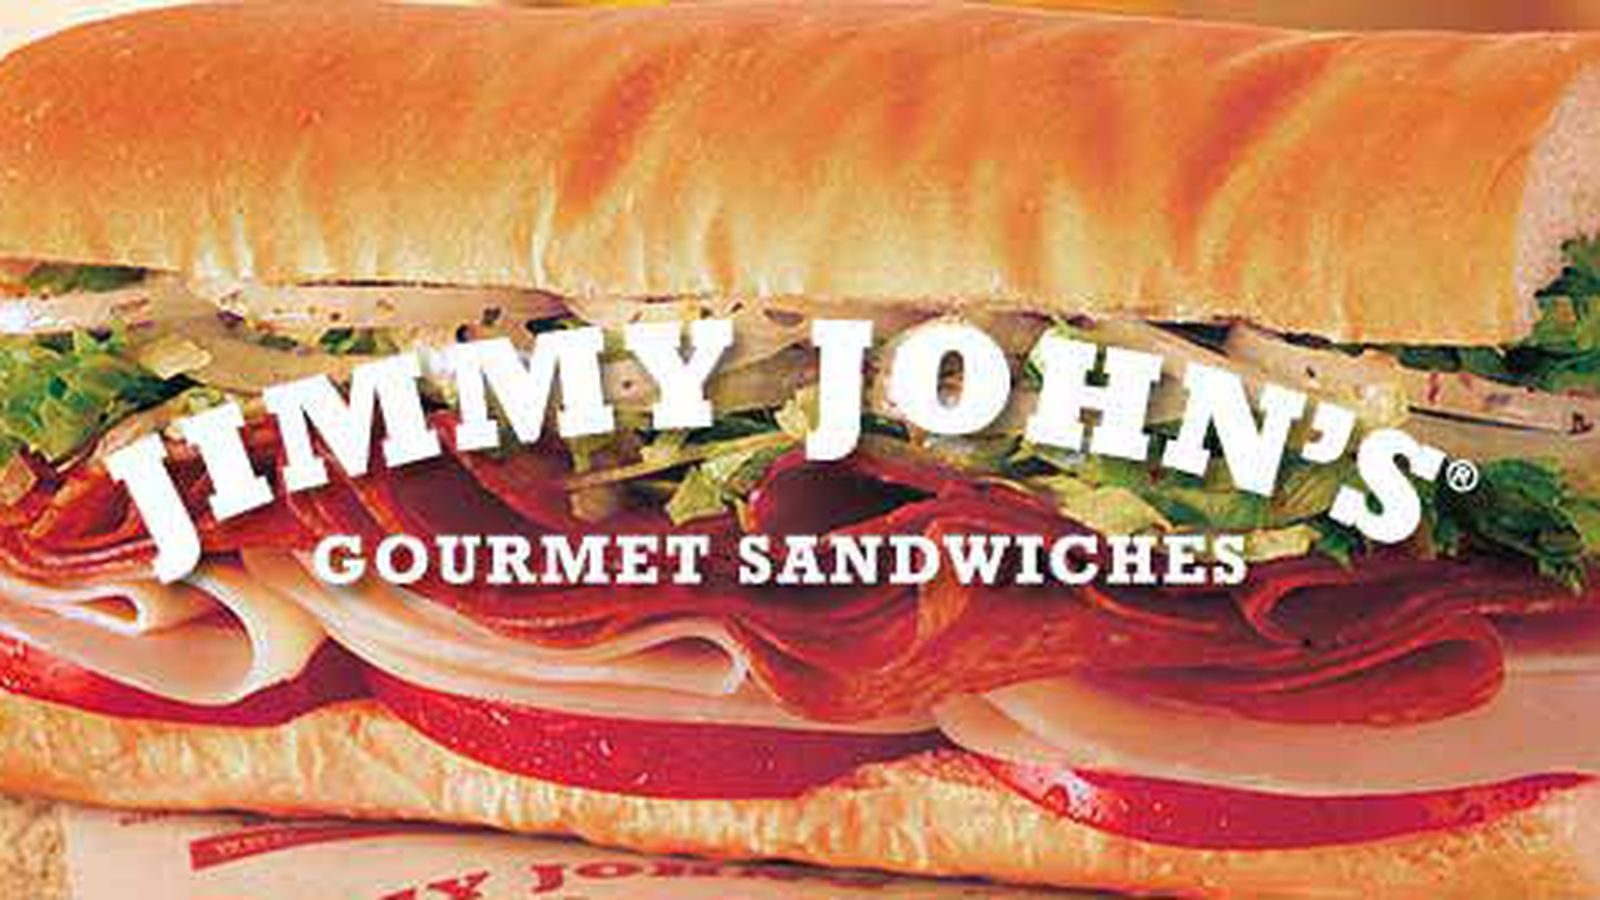 jimmy johns sandwiches - 1019×367